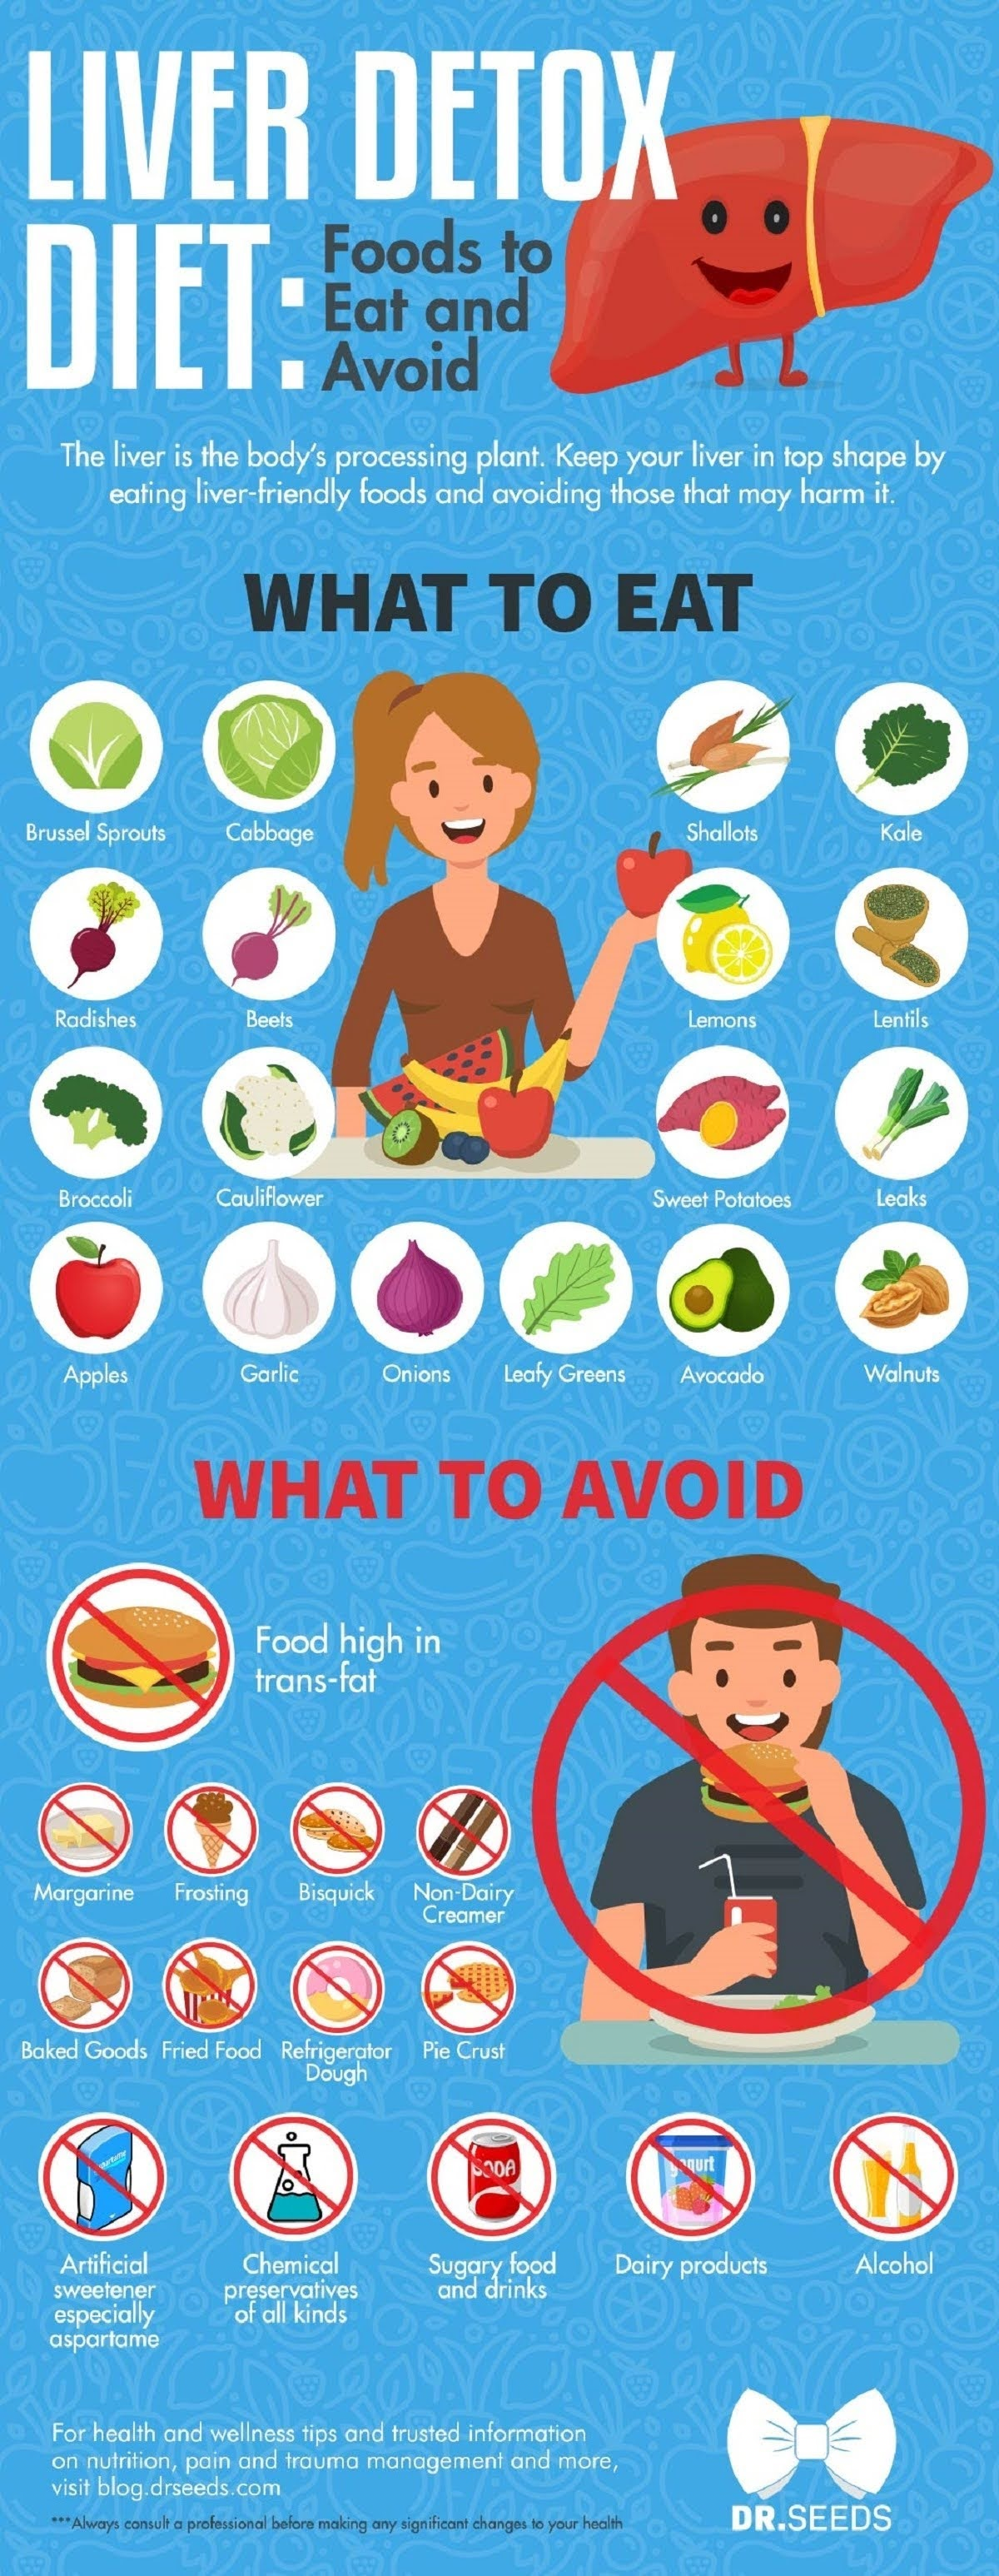 Liver Detox Diet | Foods to Eat and Avoid #infographic